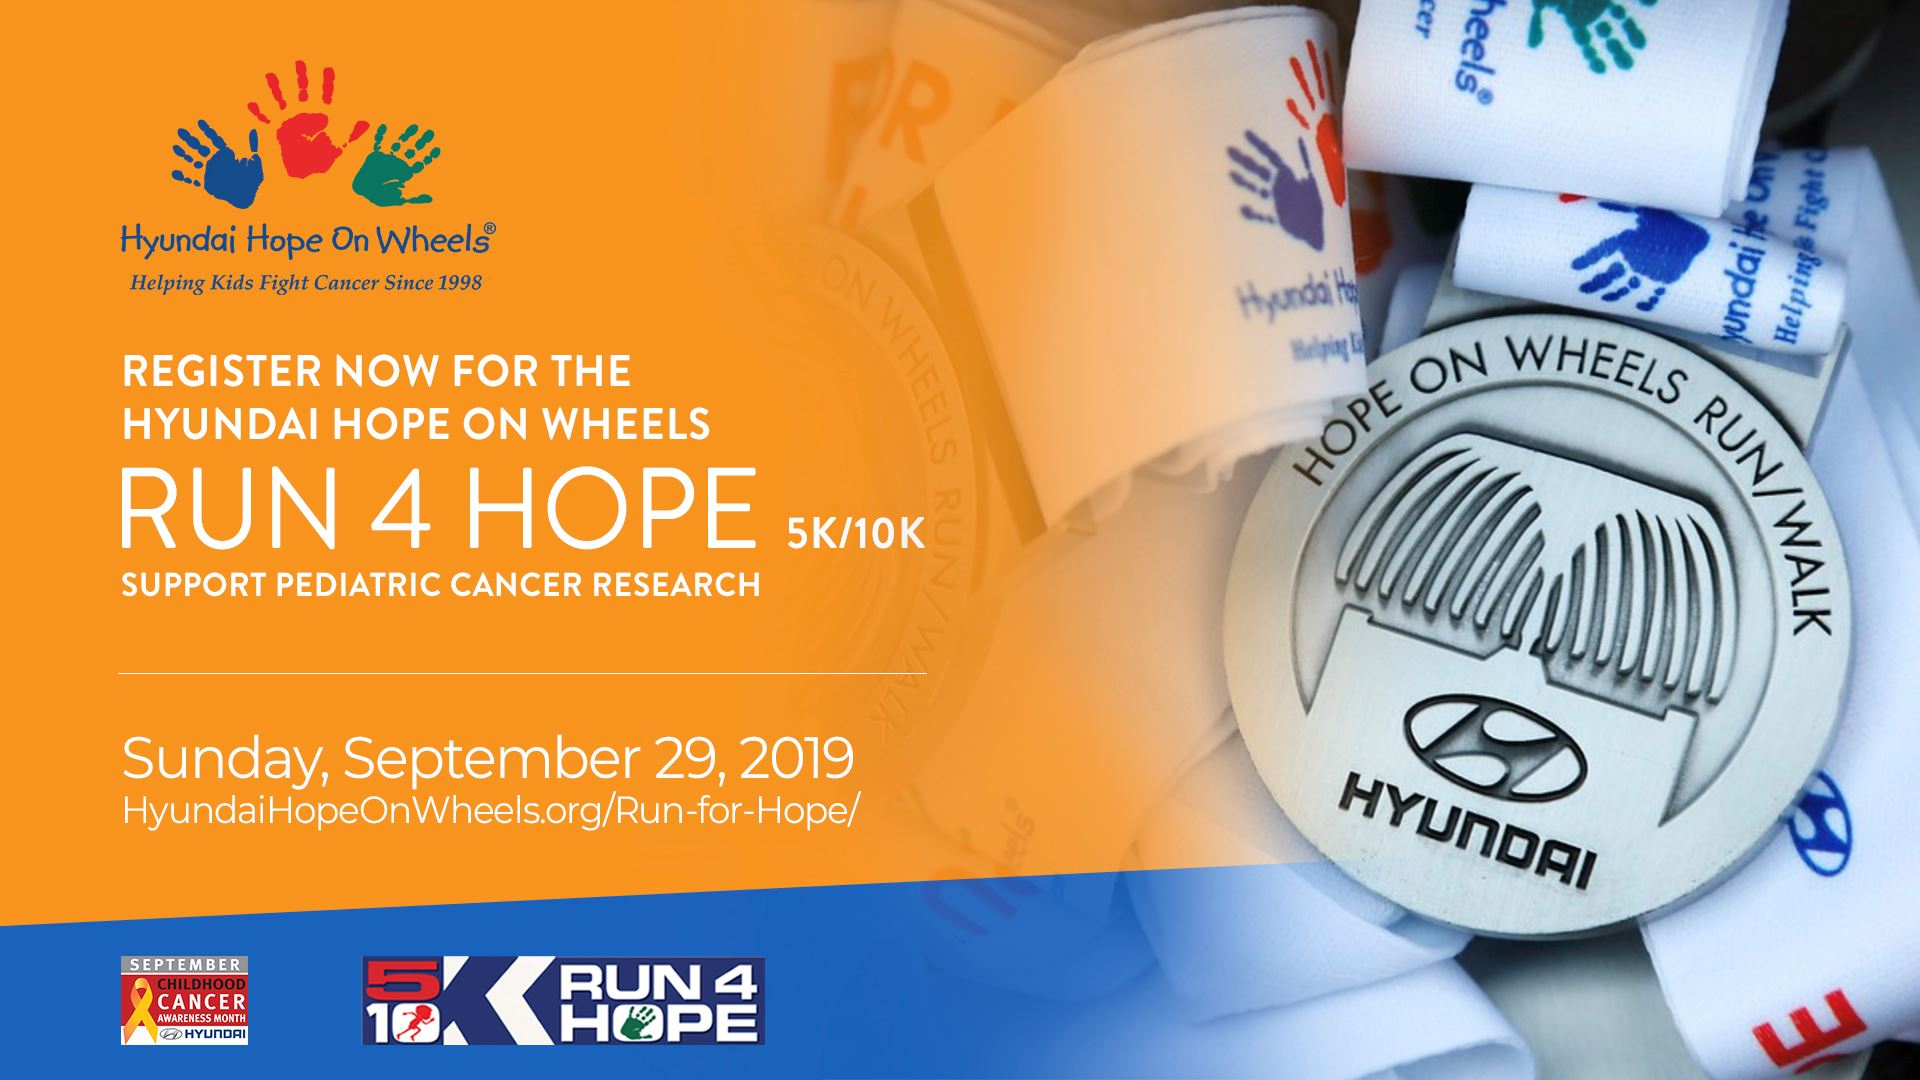 2019 Hyundai Hope on Wheels Save the Date